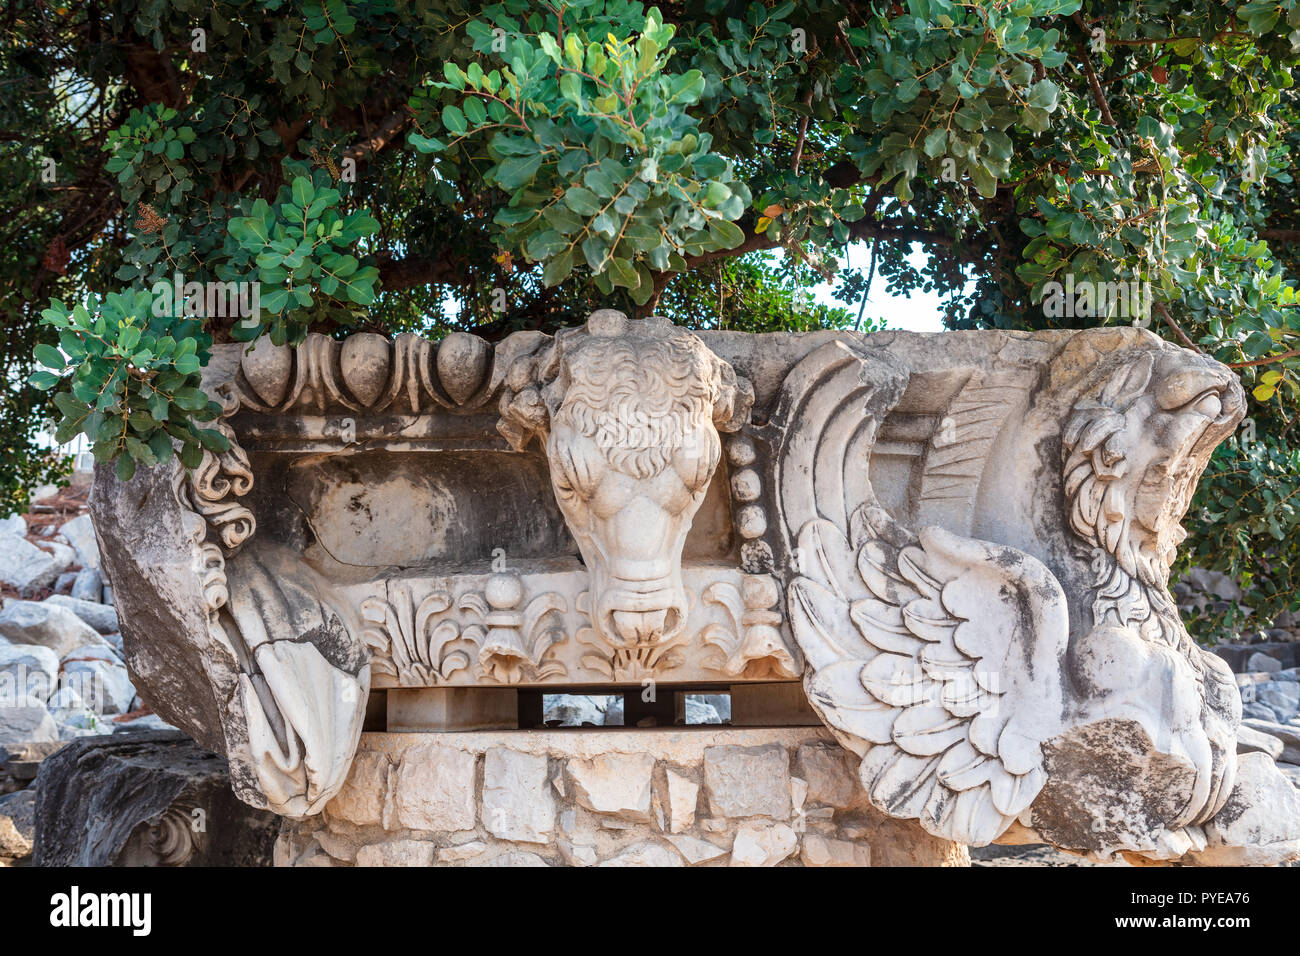 Architectural detail with head of a bull at Didyma Apollo Temple, Turkey. - Stock Image